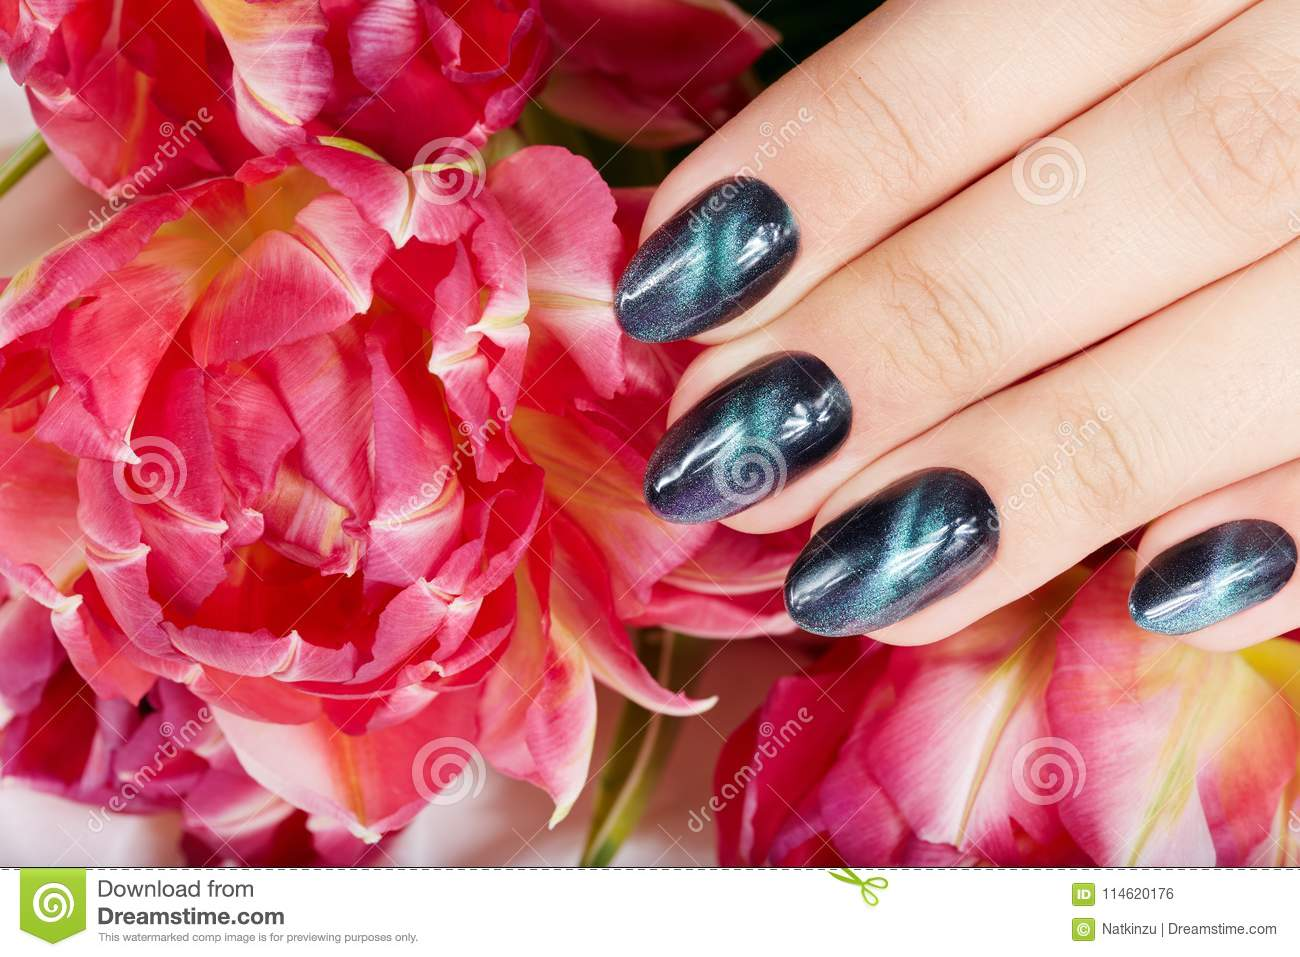 Hand With Manicured Nails With Cat Eye Design Stock Photo - Image of ...